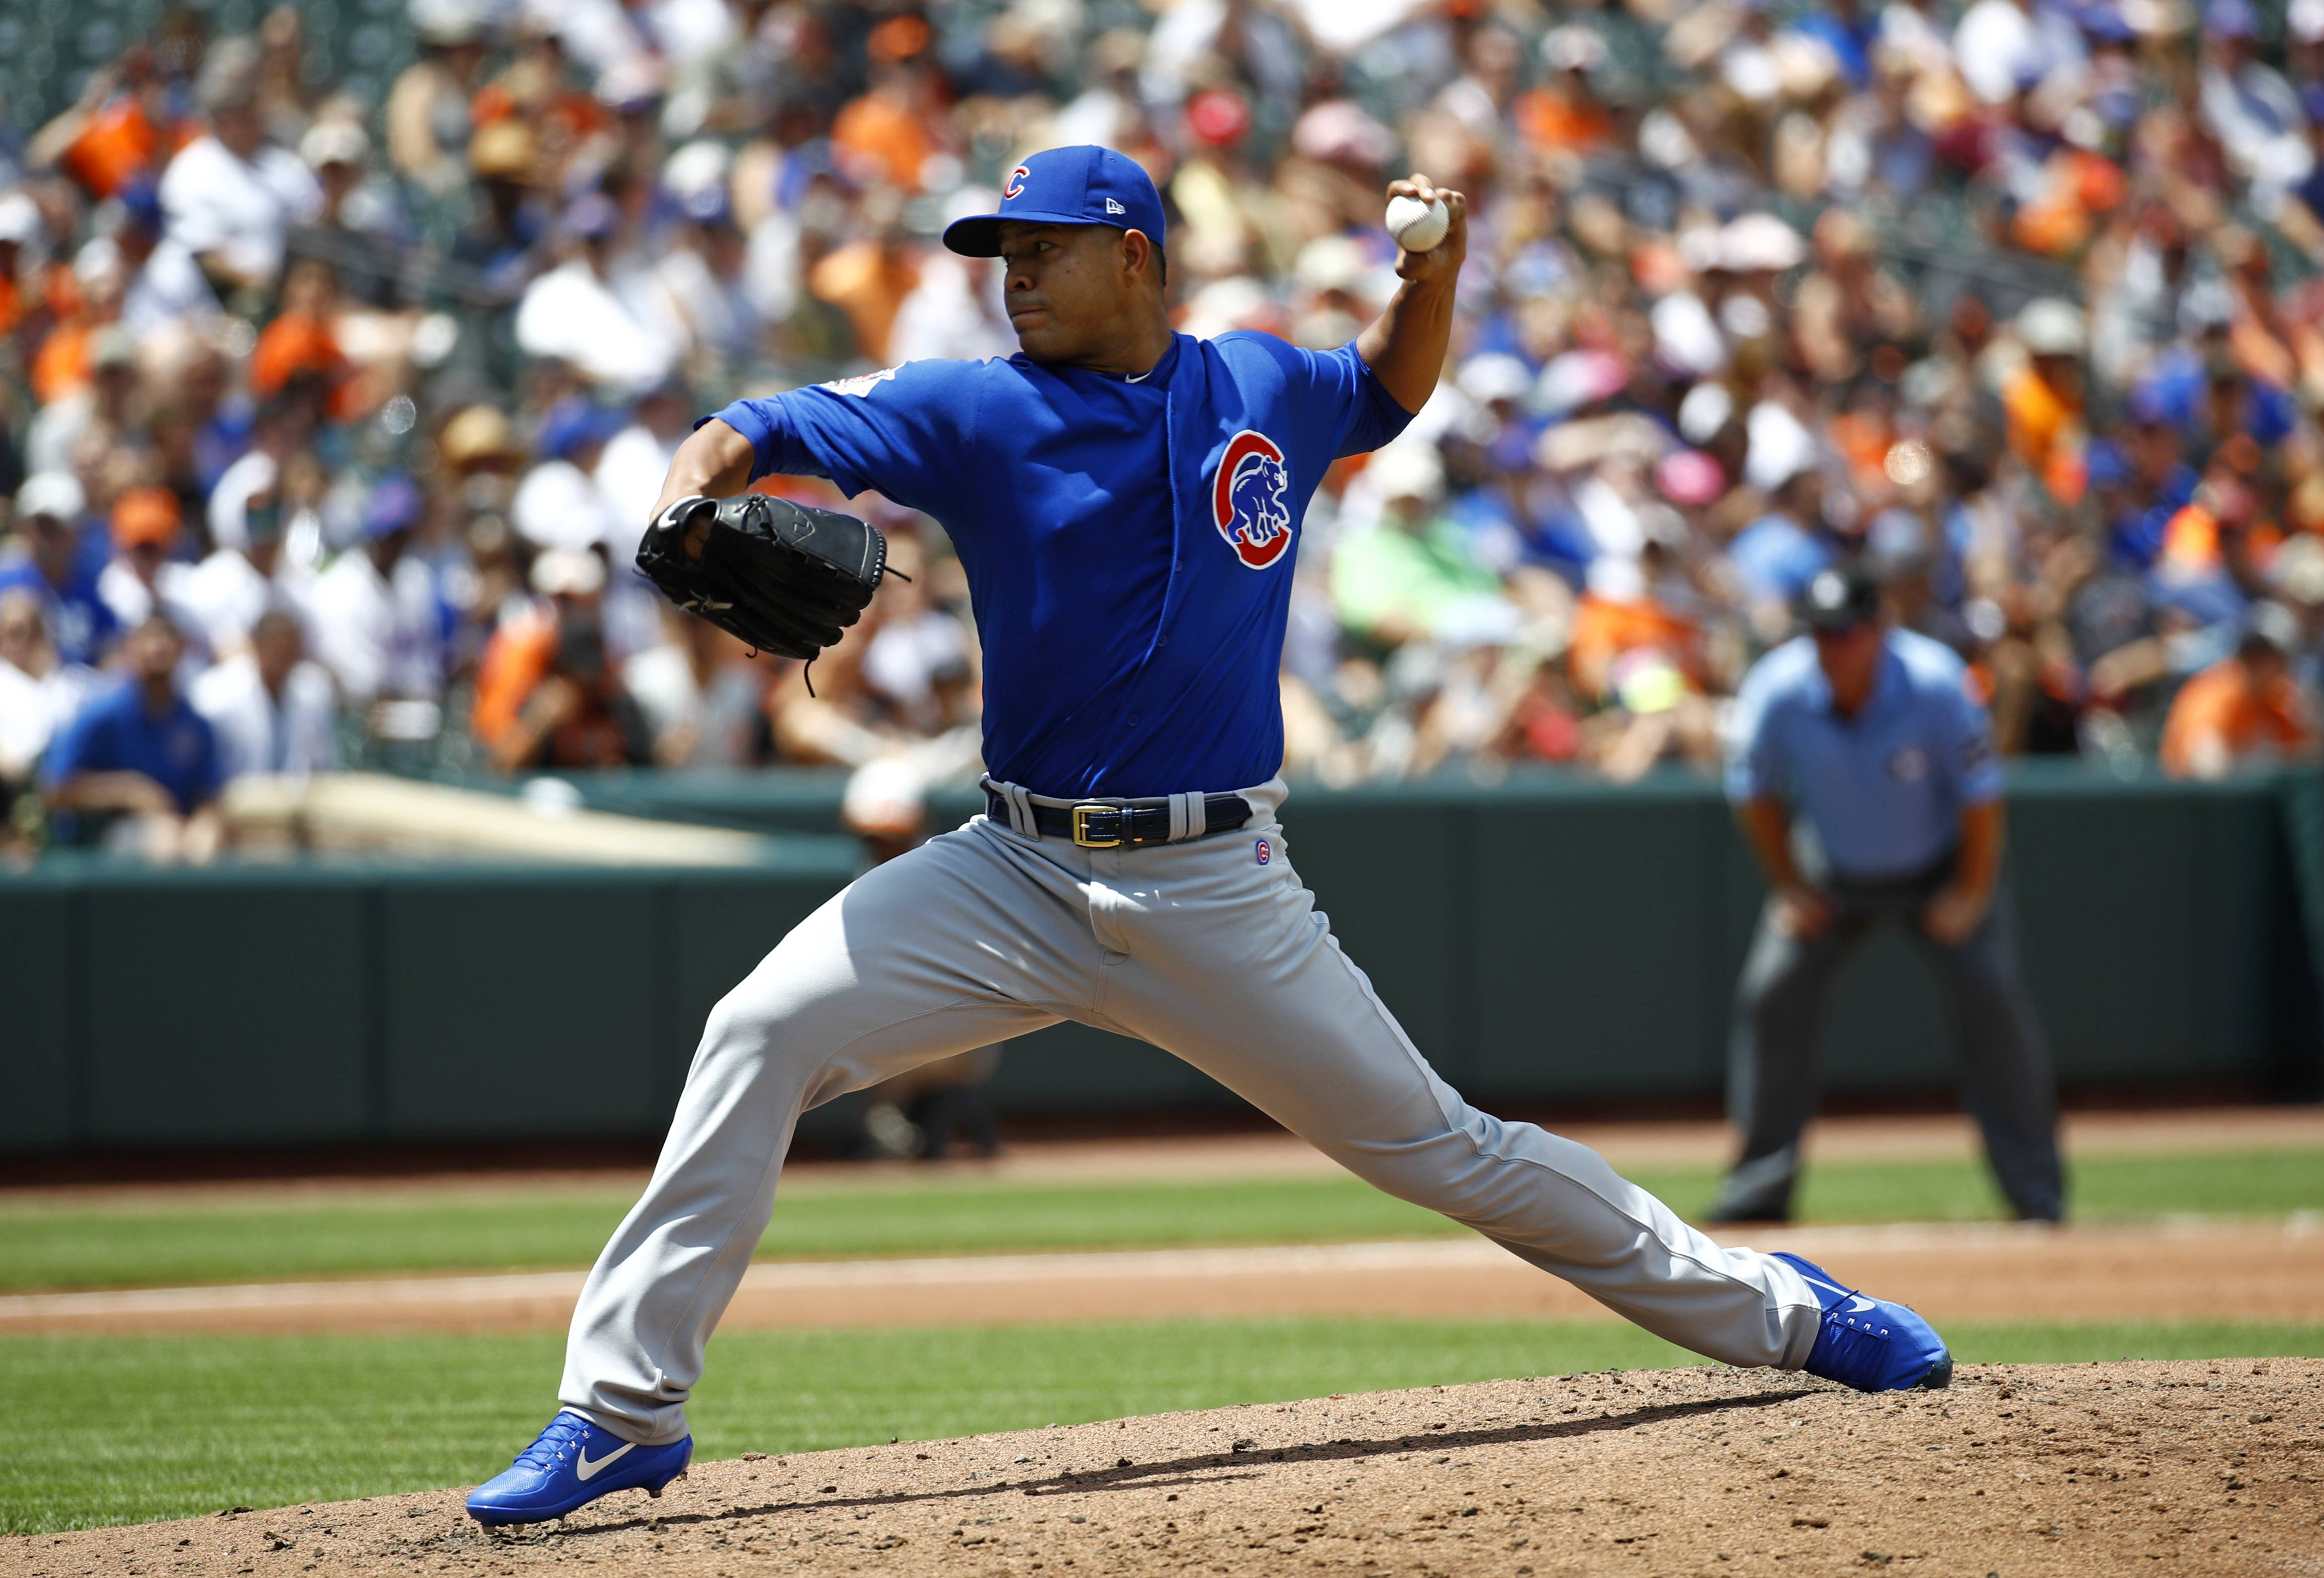 Chicago Cubs starting pitcher Jose Quintana throws to the Baltimore Orioles in the second inning of a baseball game in Baltimore, Sunday, July 16, 2017.